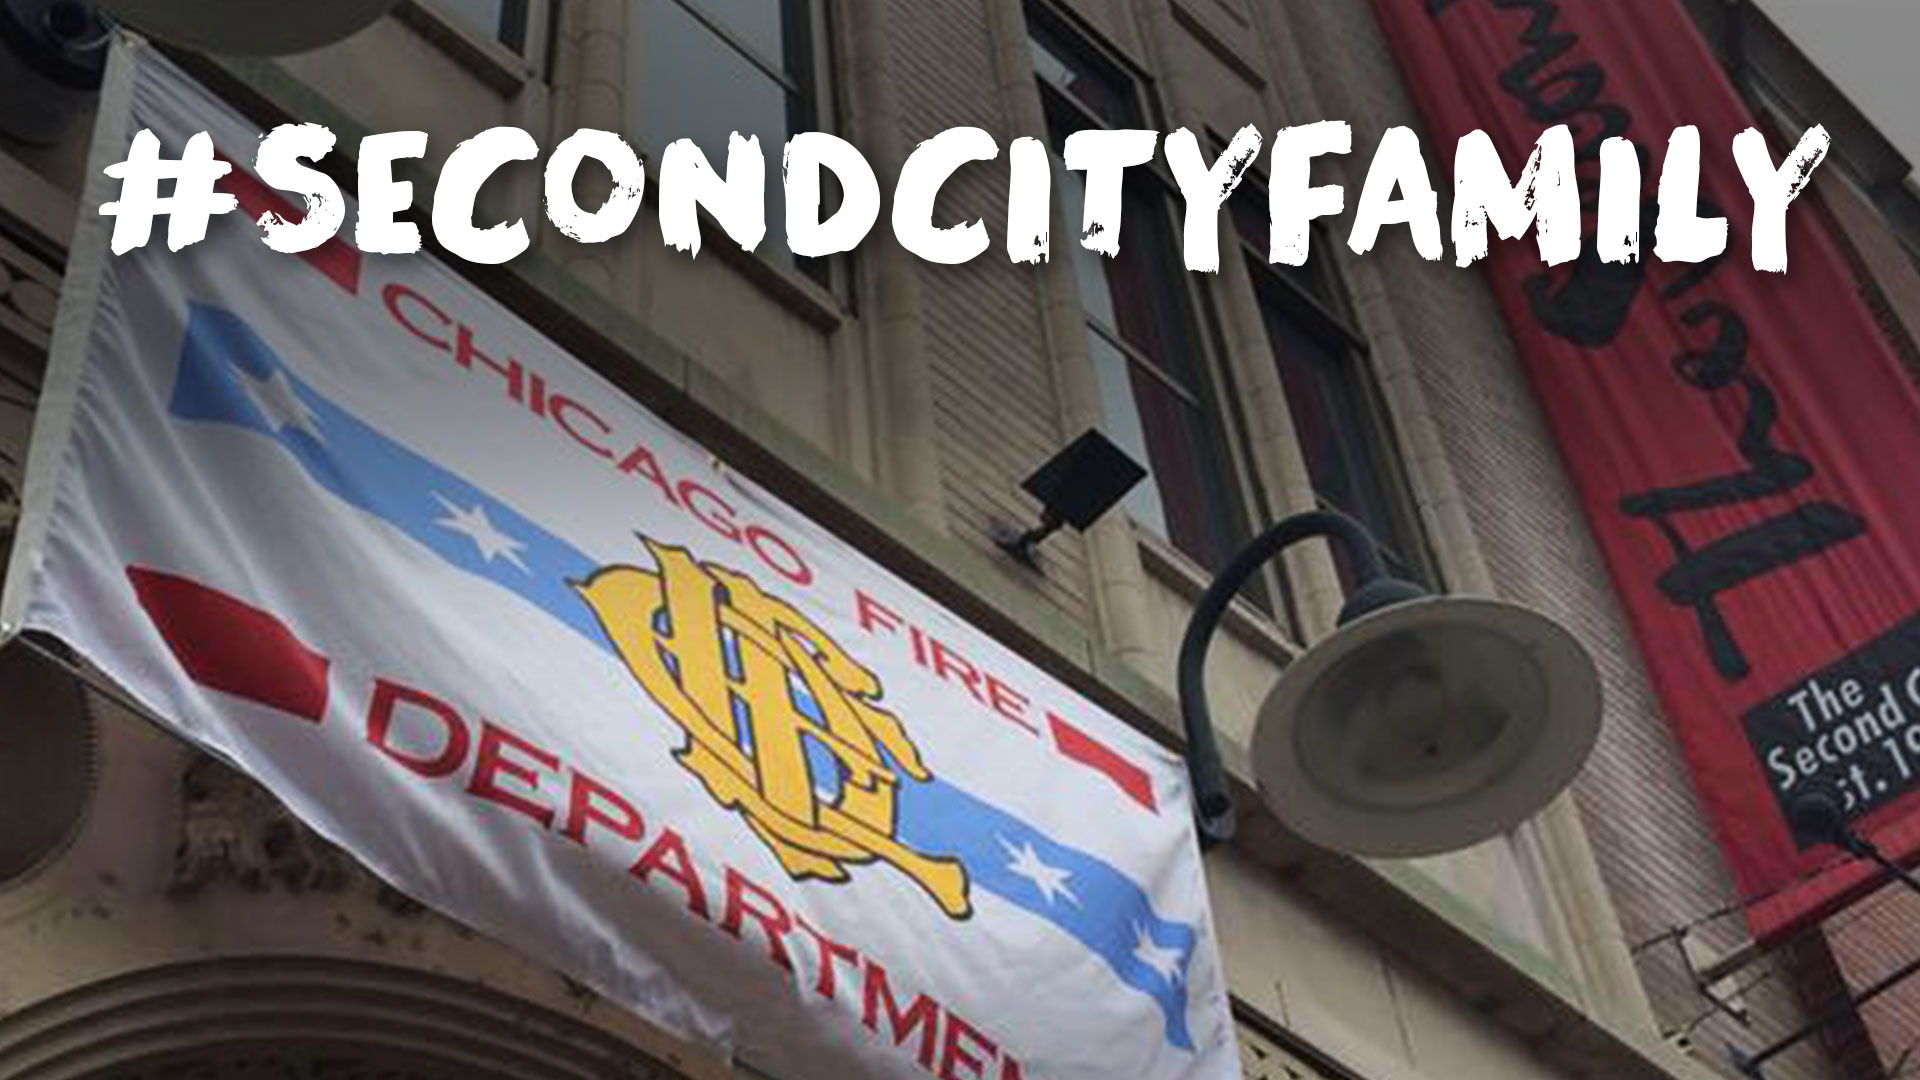 What We've Learned About Second City Since Last Week